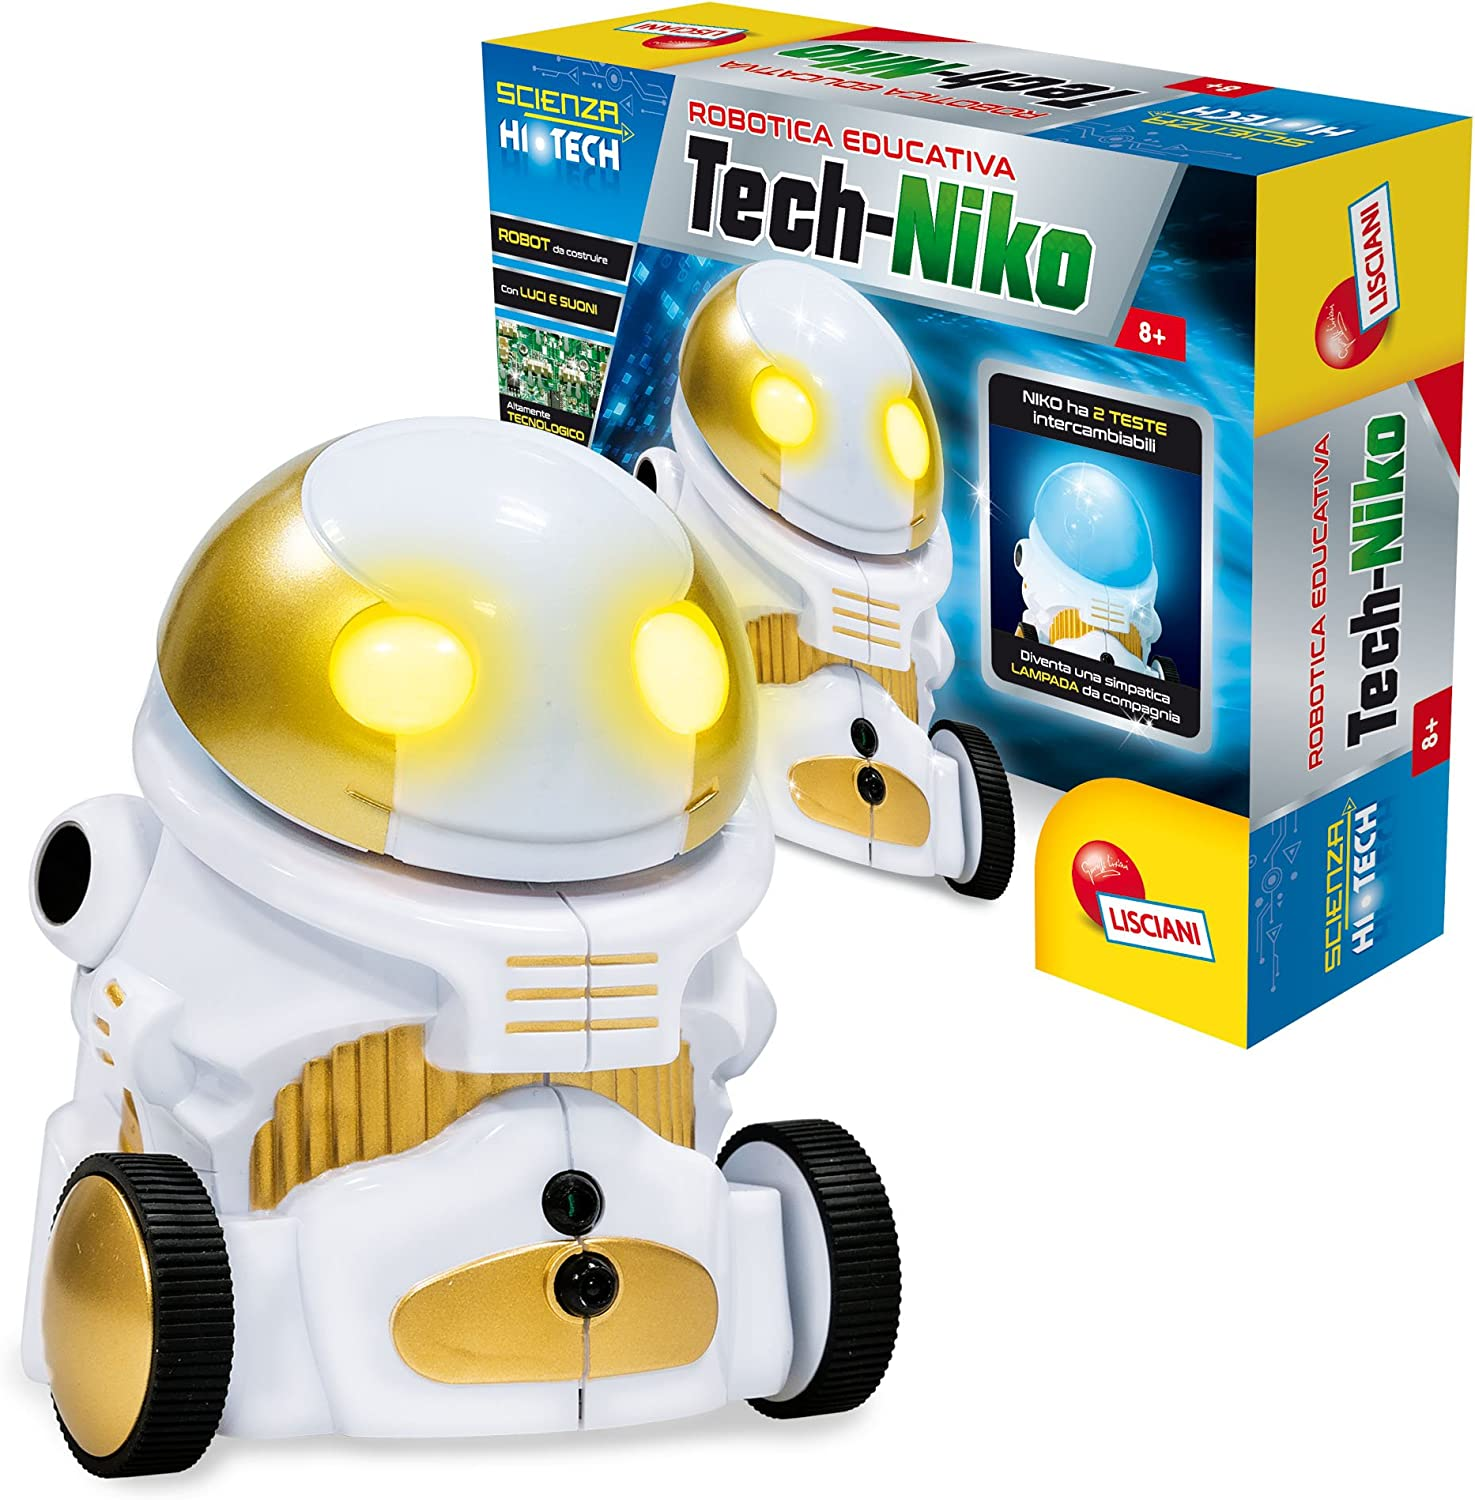 Hypocrite detection Whichever  Amazon.com: Lisciani Giochi 66926.0 – Science Hi tech-niko: Toys ...